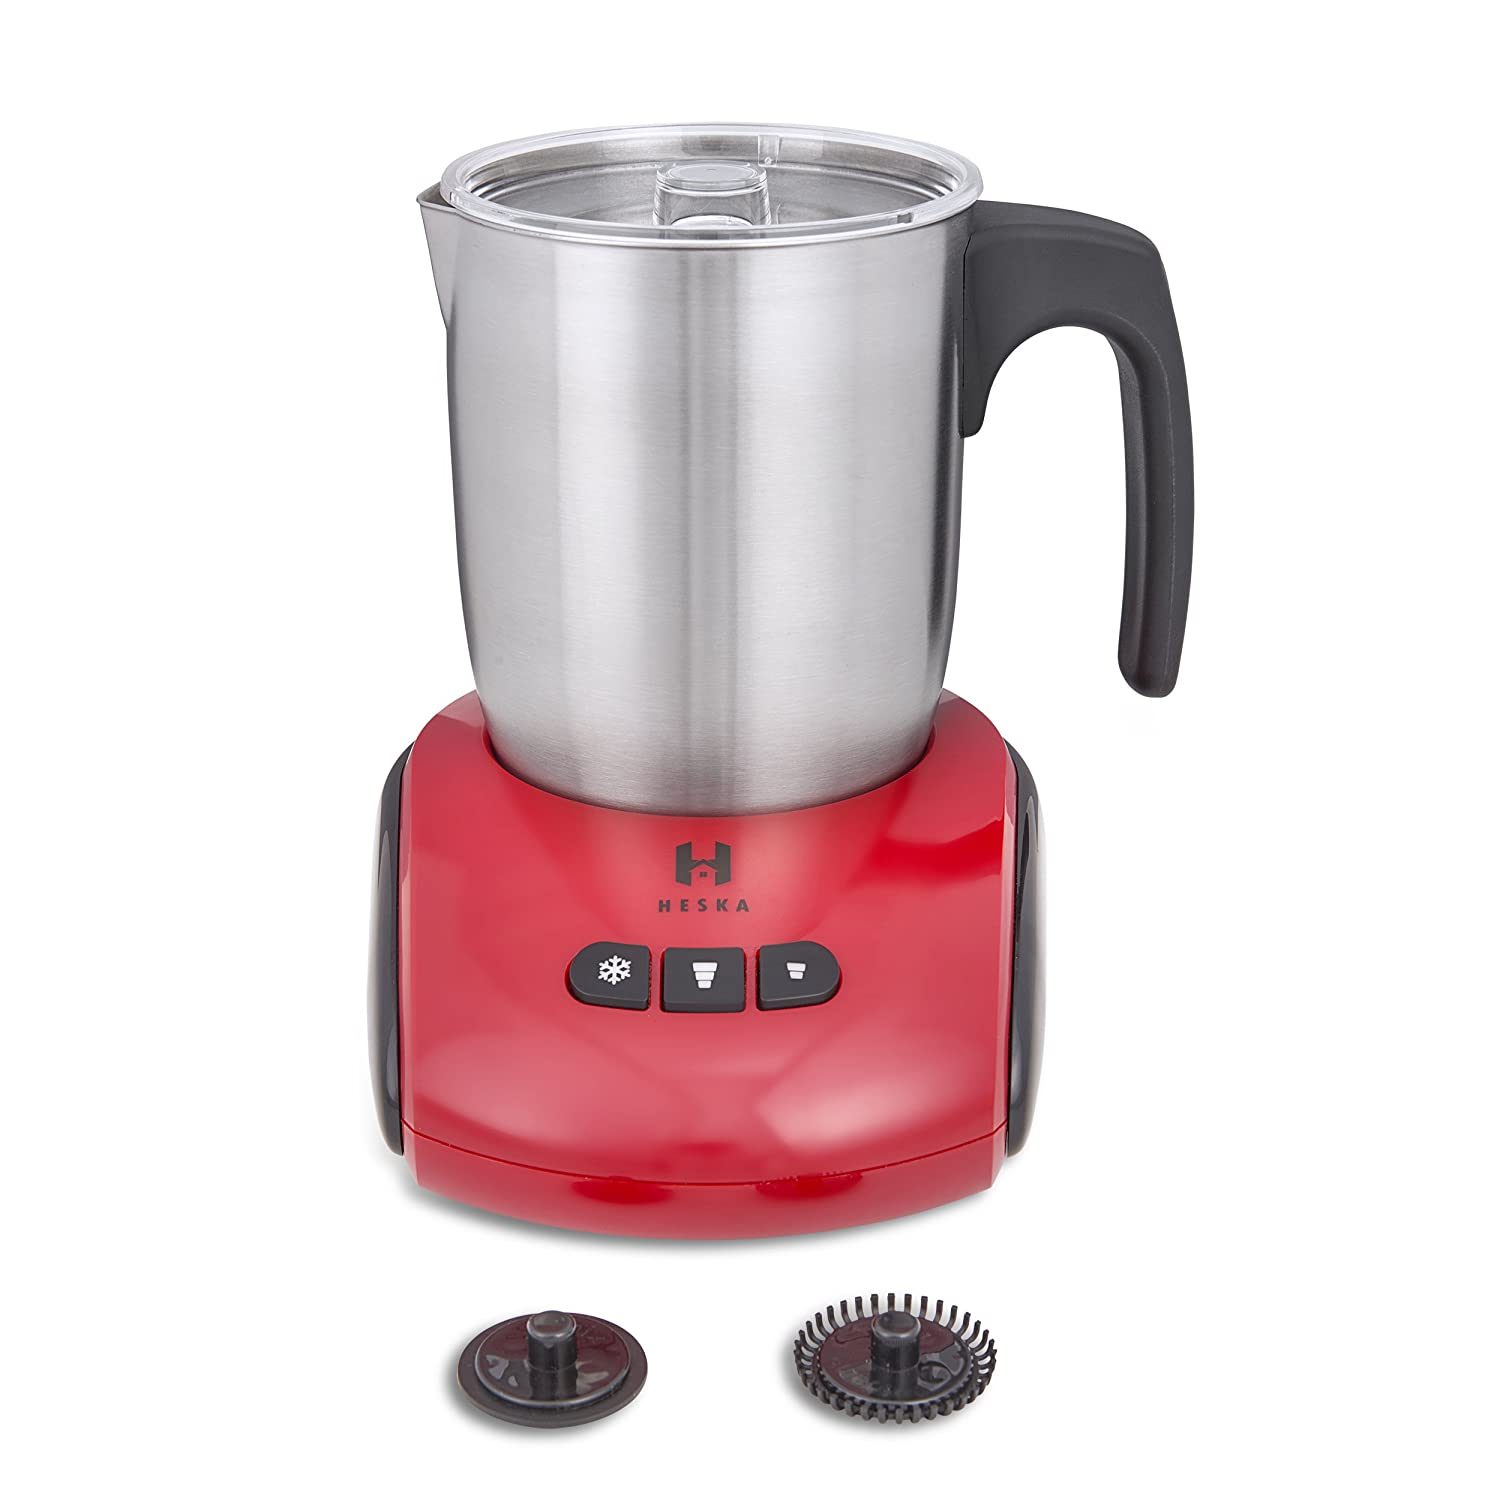 Heska - Milk Frother - Dishwasher Safe-Hot Chocolates -Lattes -Automatic Stainless Steel - Electric Frother Warmer For Hot and Cold Milk - Milk Level Indicator with Extra Frothing Whisk - 3 Colours Available (Red) Advanced Ideas Ltd